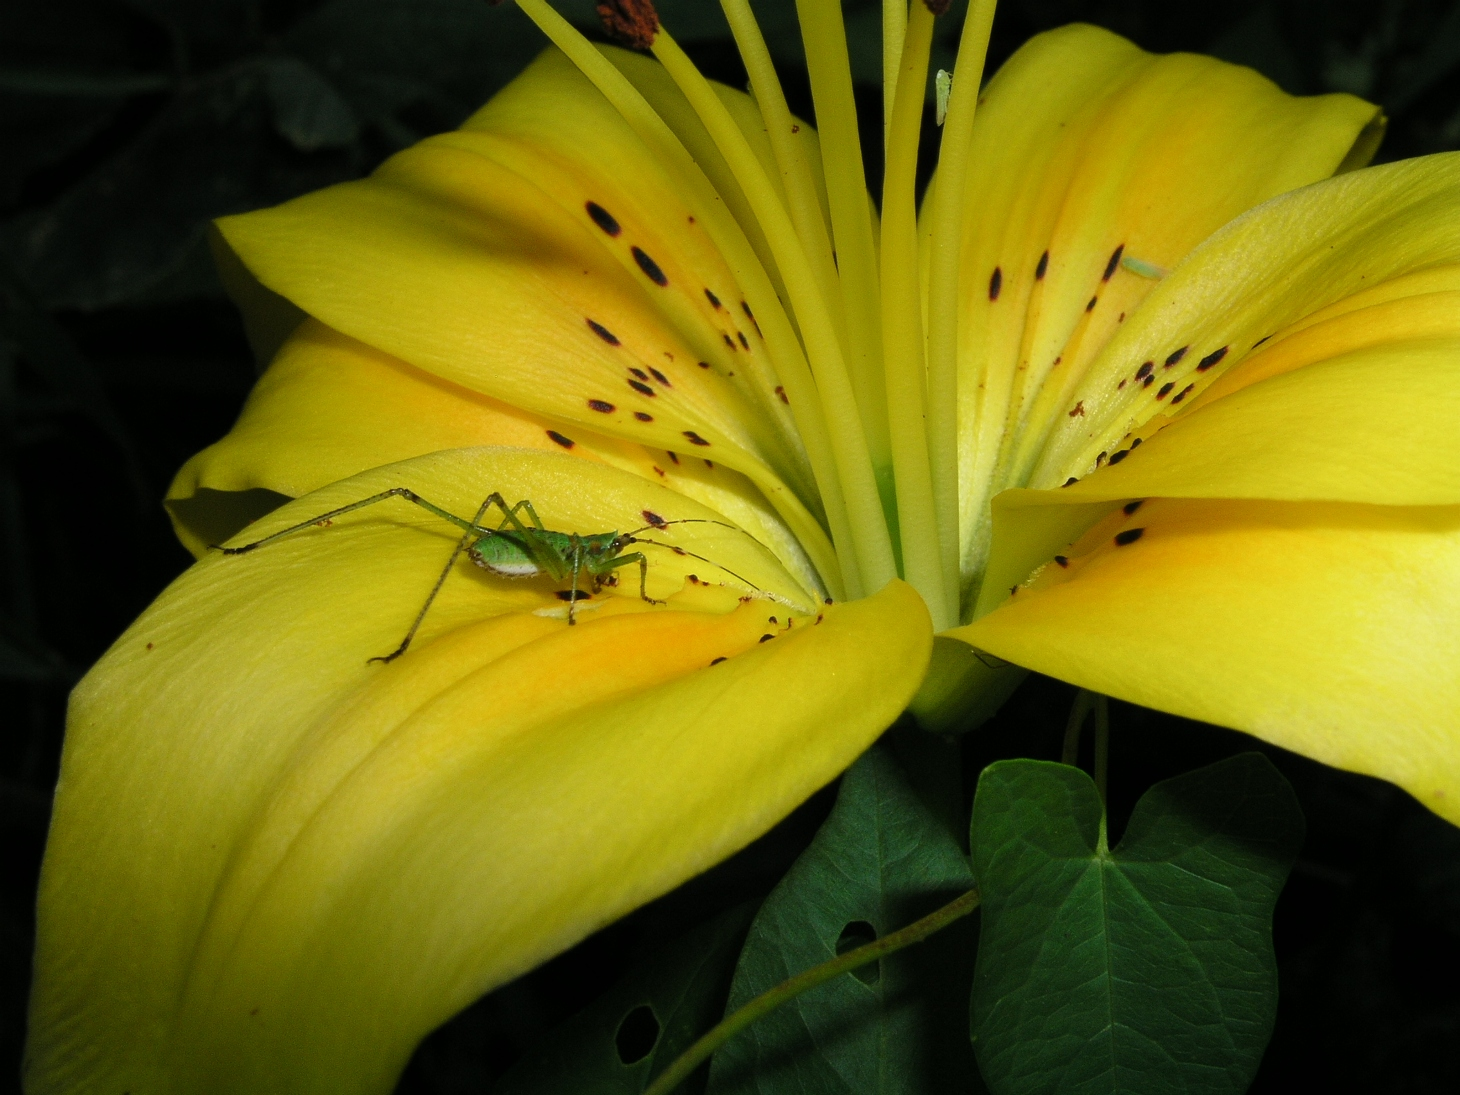 Three Bugs in an Eternal Flower (1) by Thomas Peace 2013